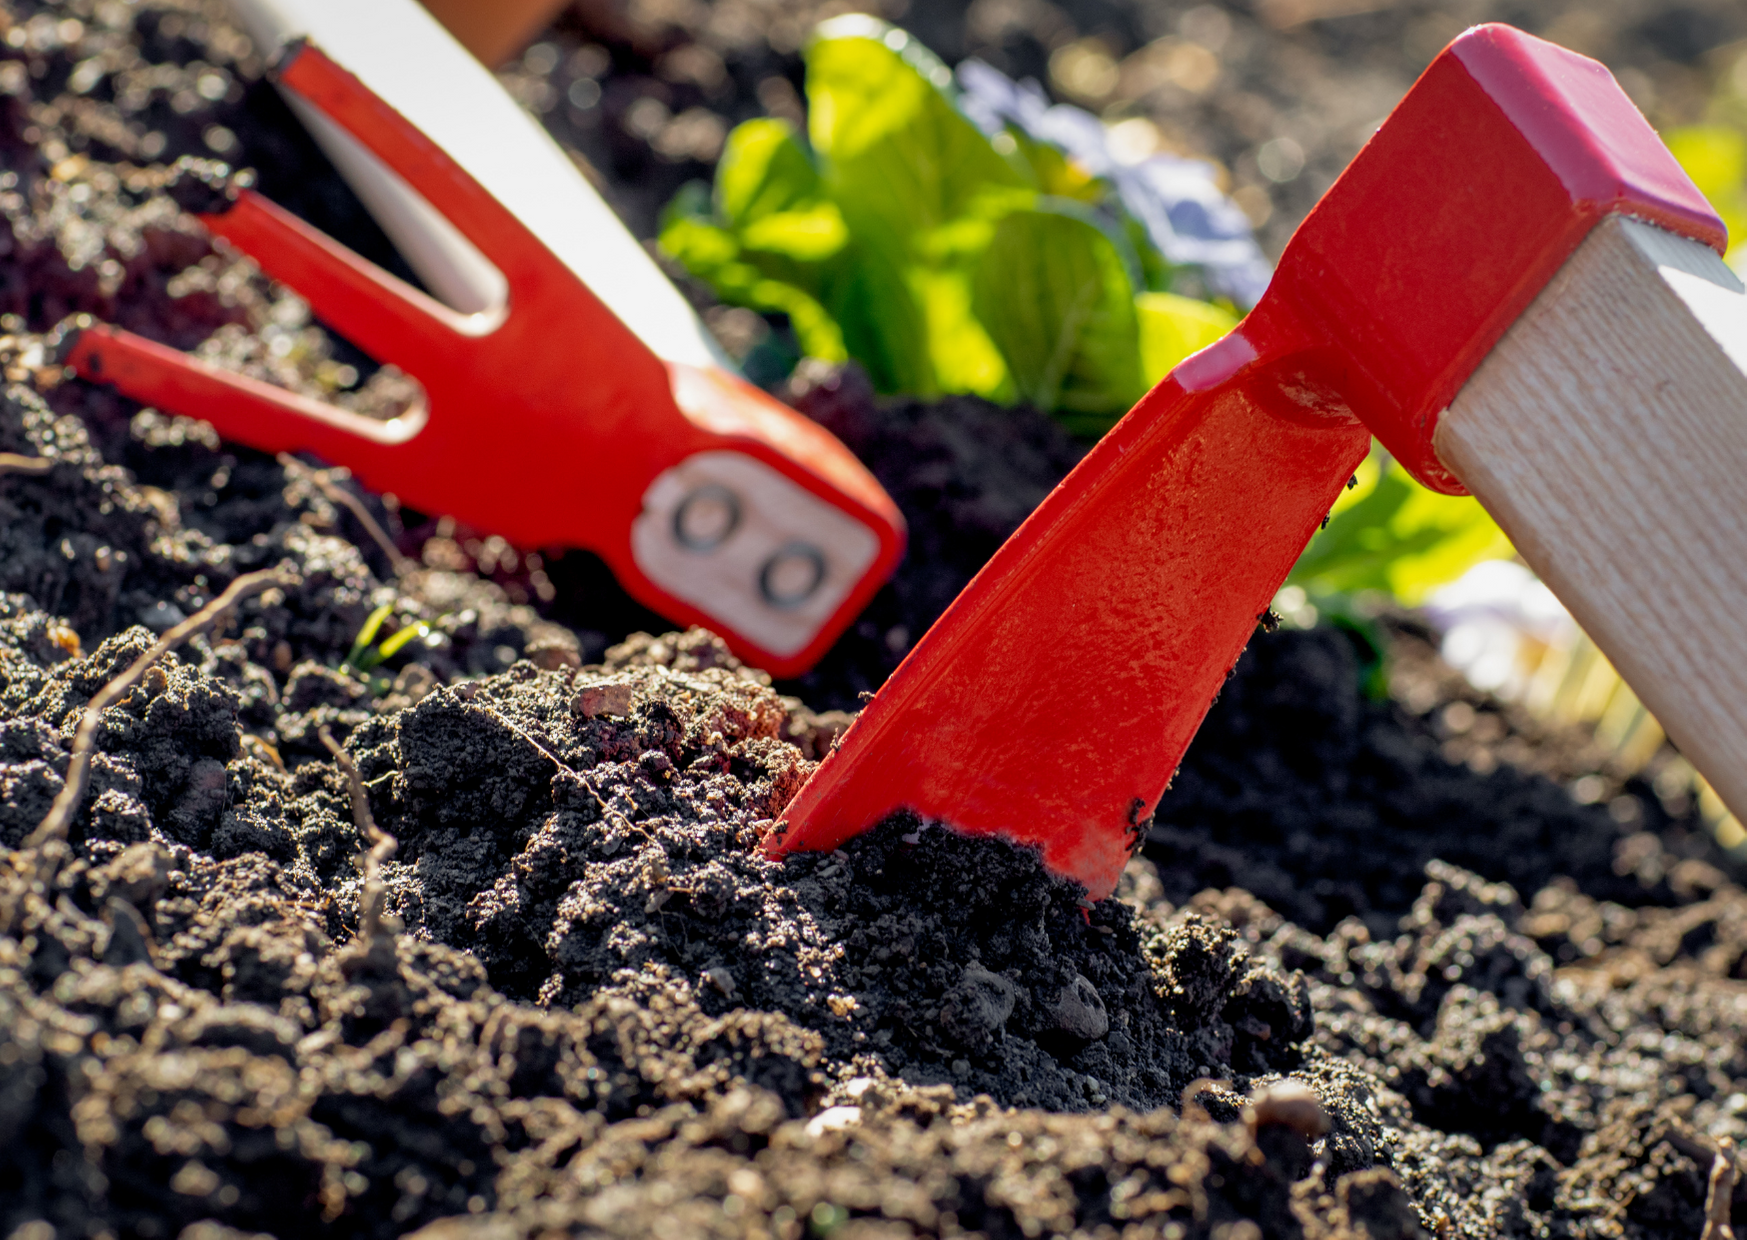 Tilling the Earth in a Small Garden